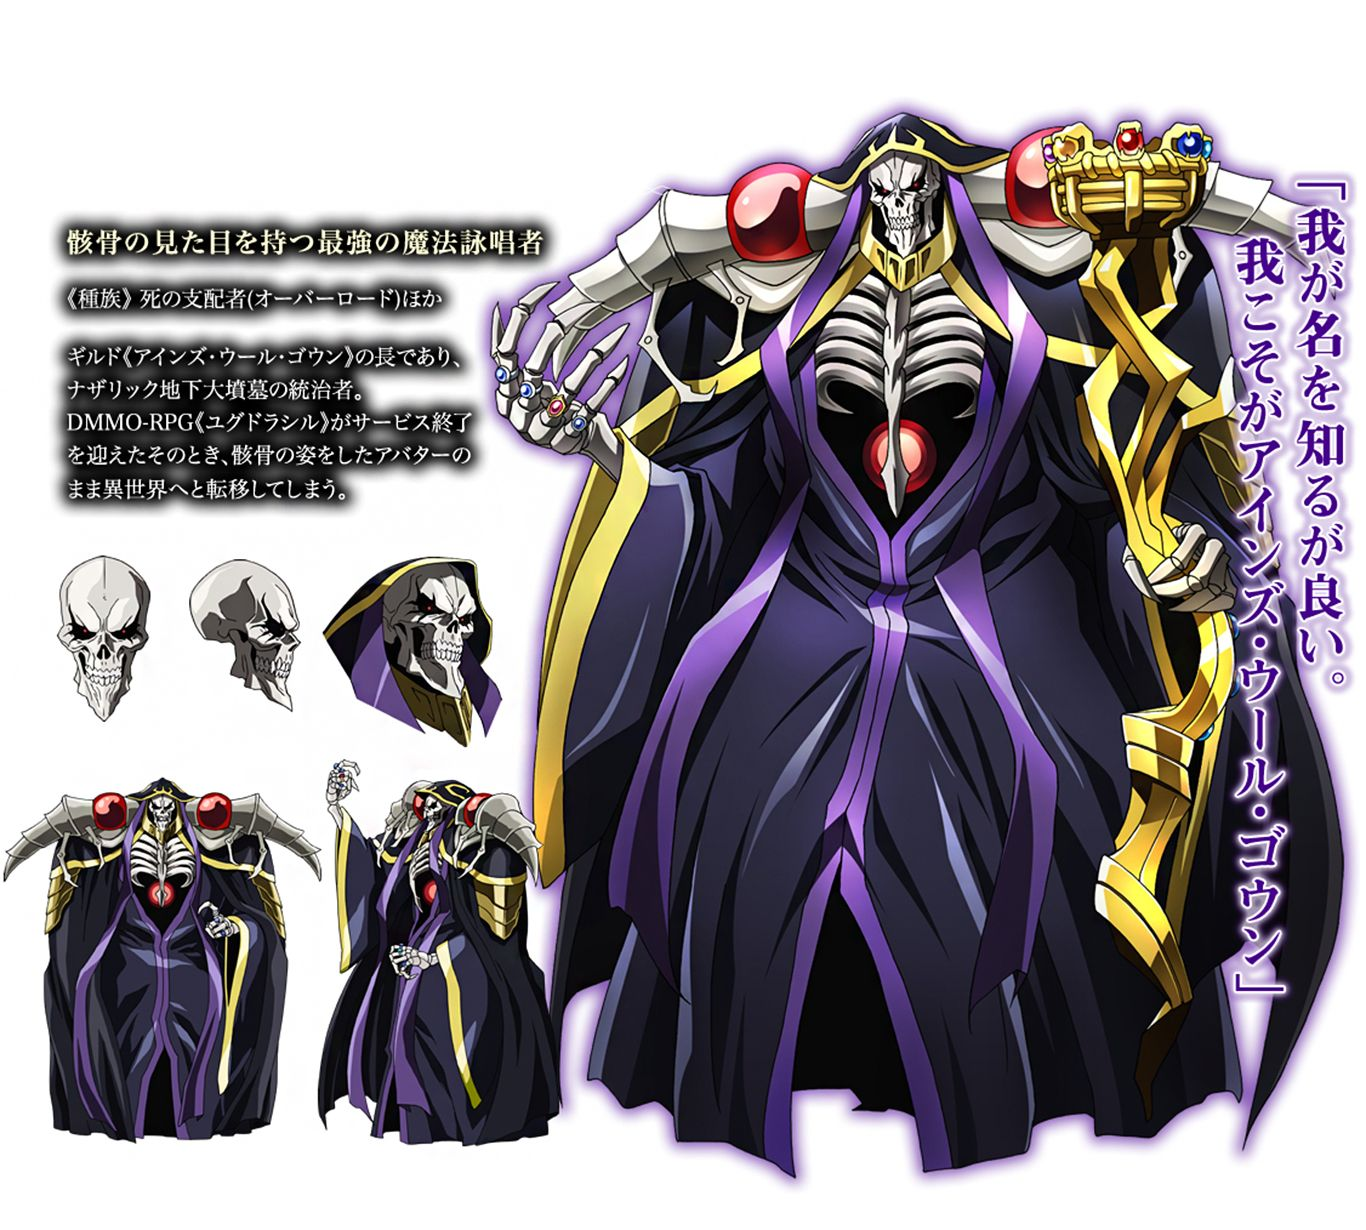 Anime Overlord Ainz Ooal Gown Overlord Wallpaper Anime